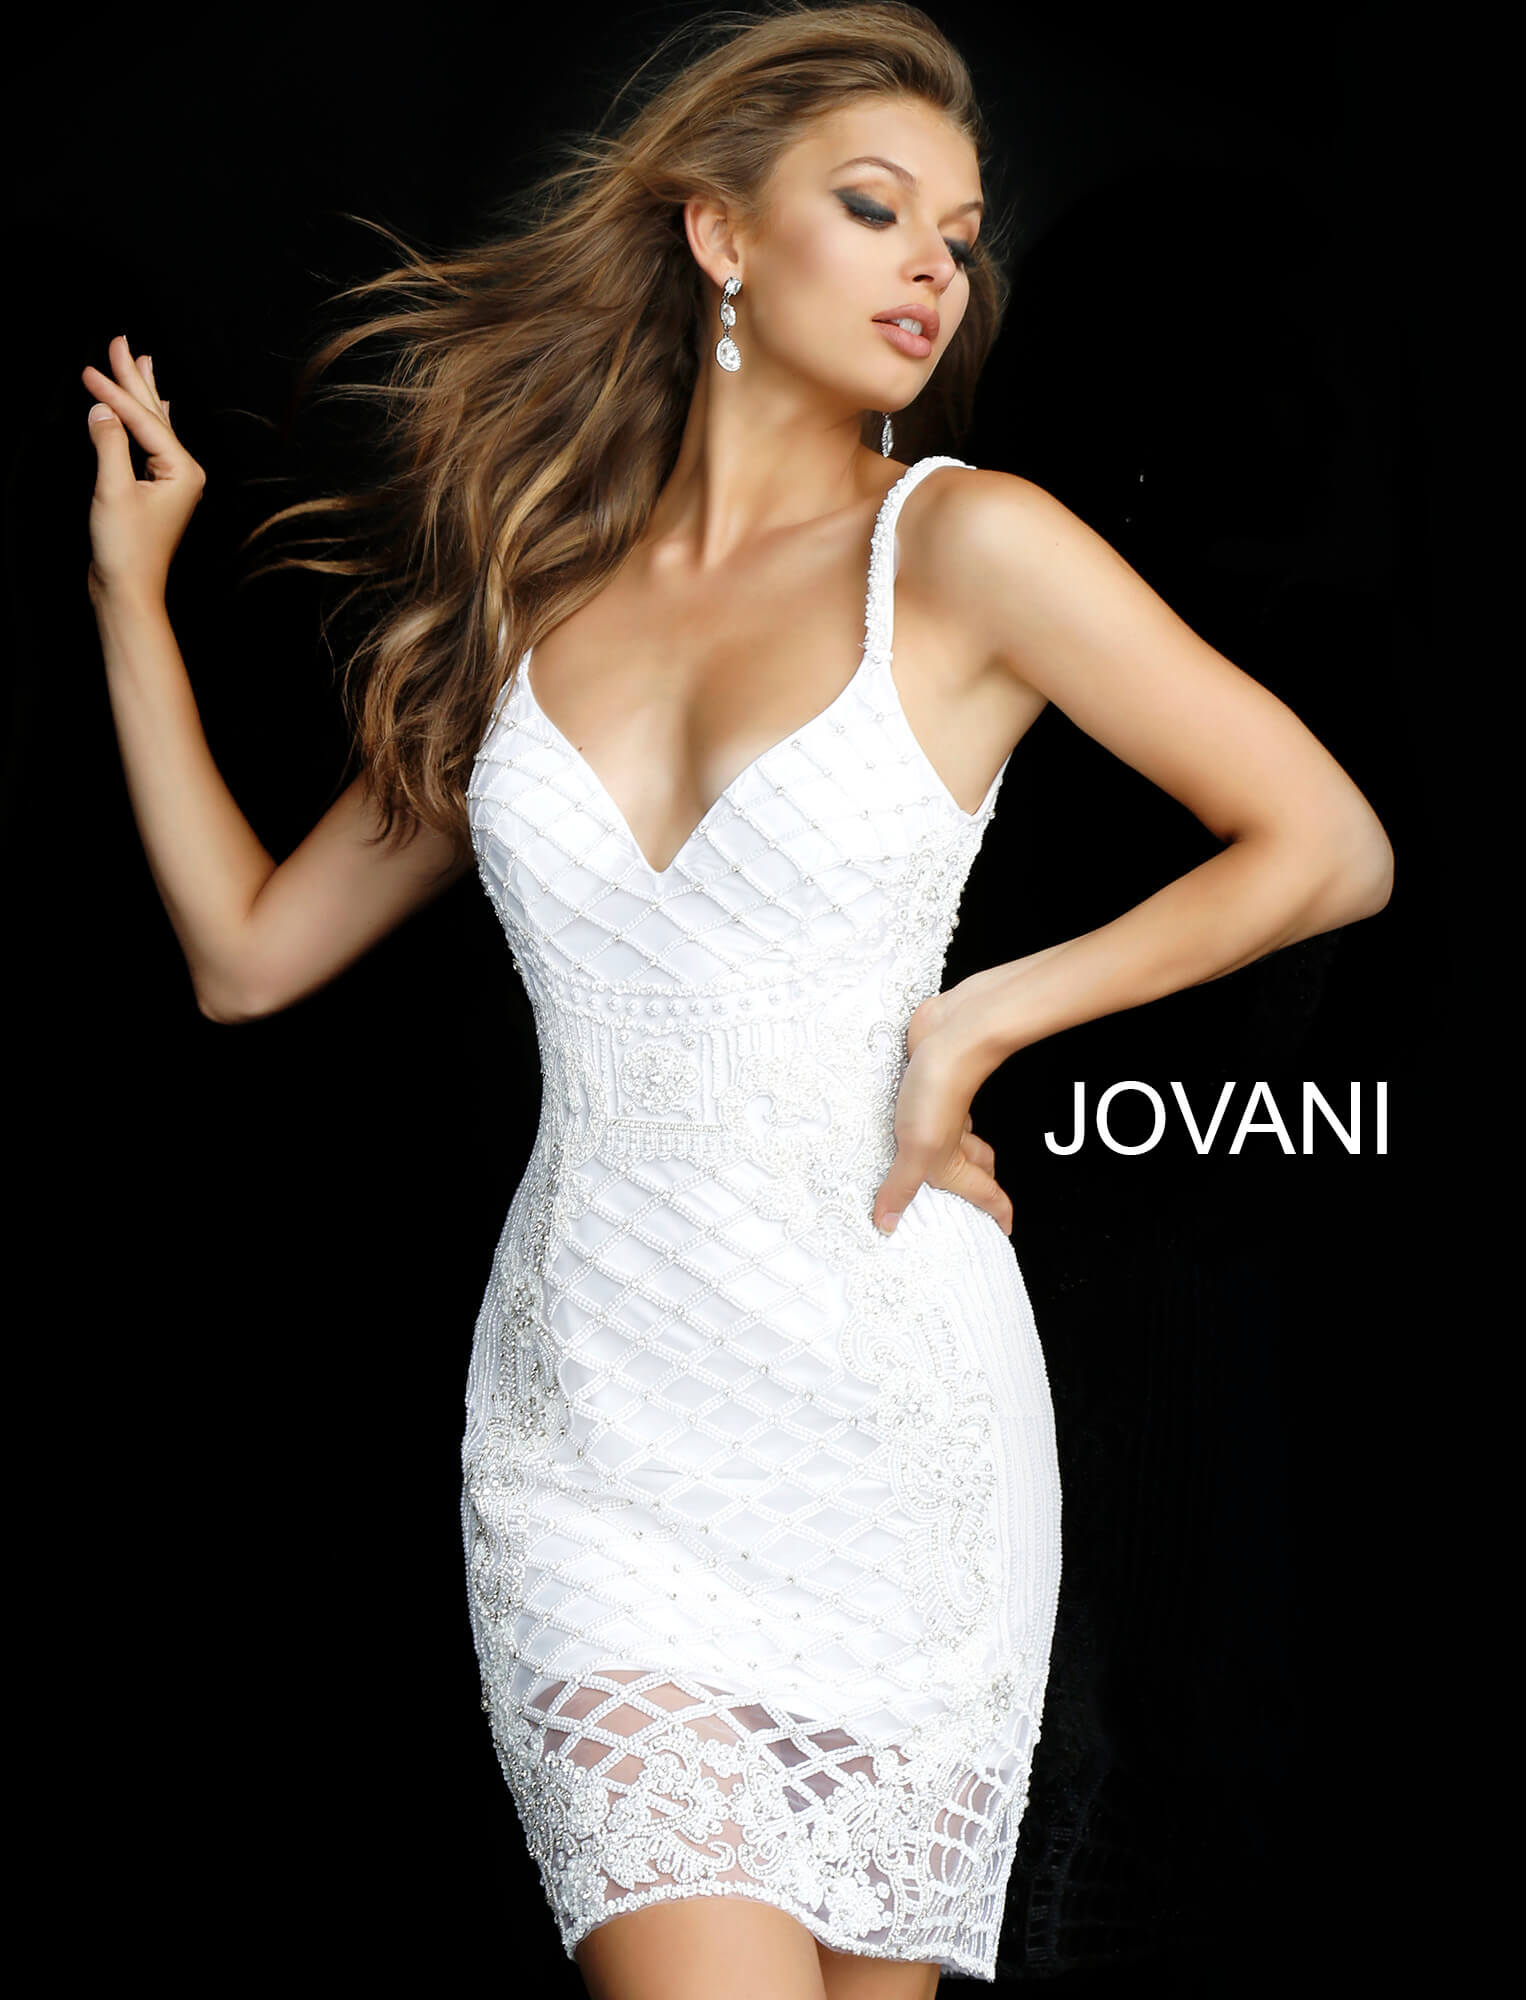 jovani White V Neck Embellished Fitted Cocktail Dress 66769